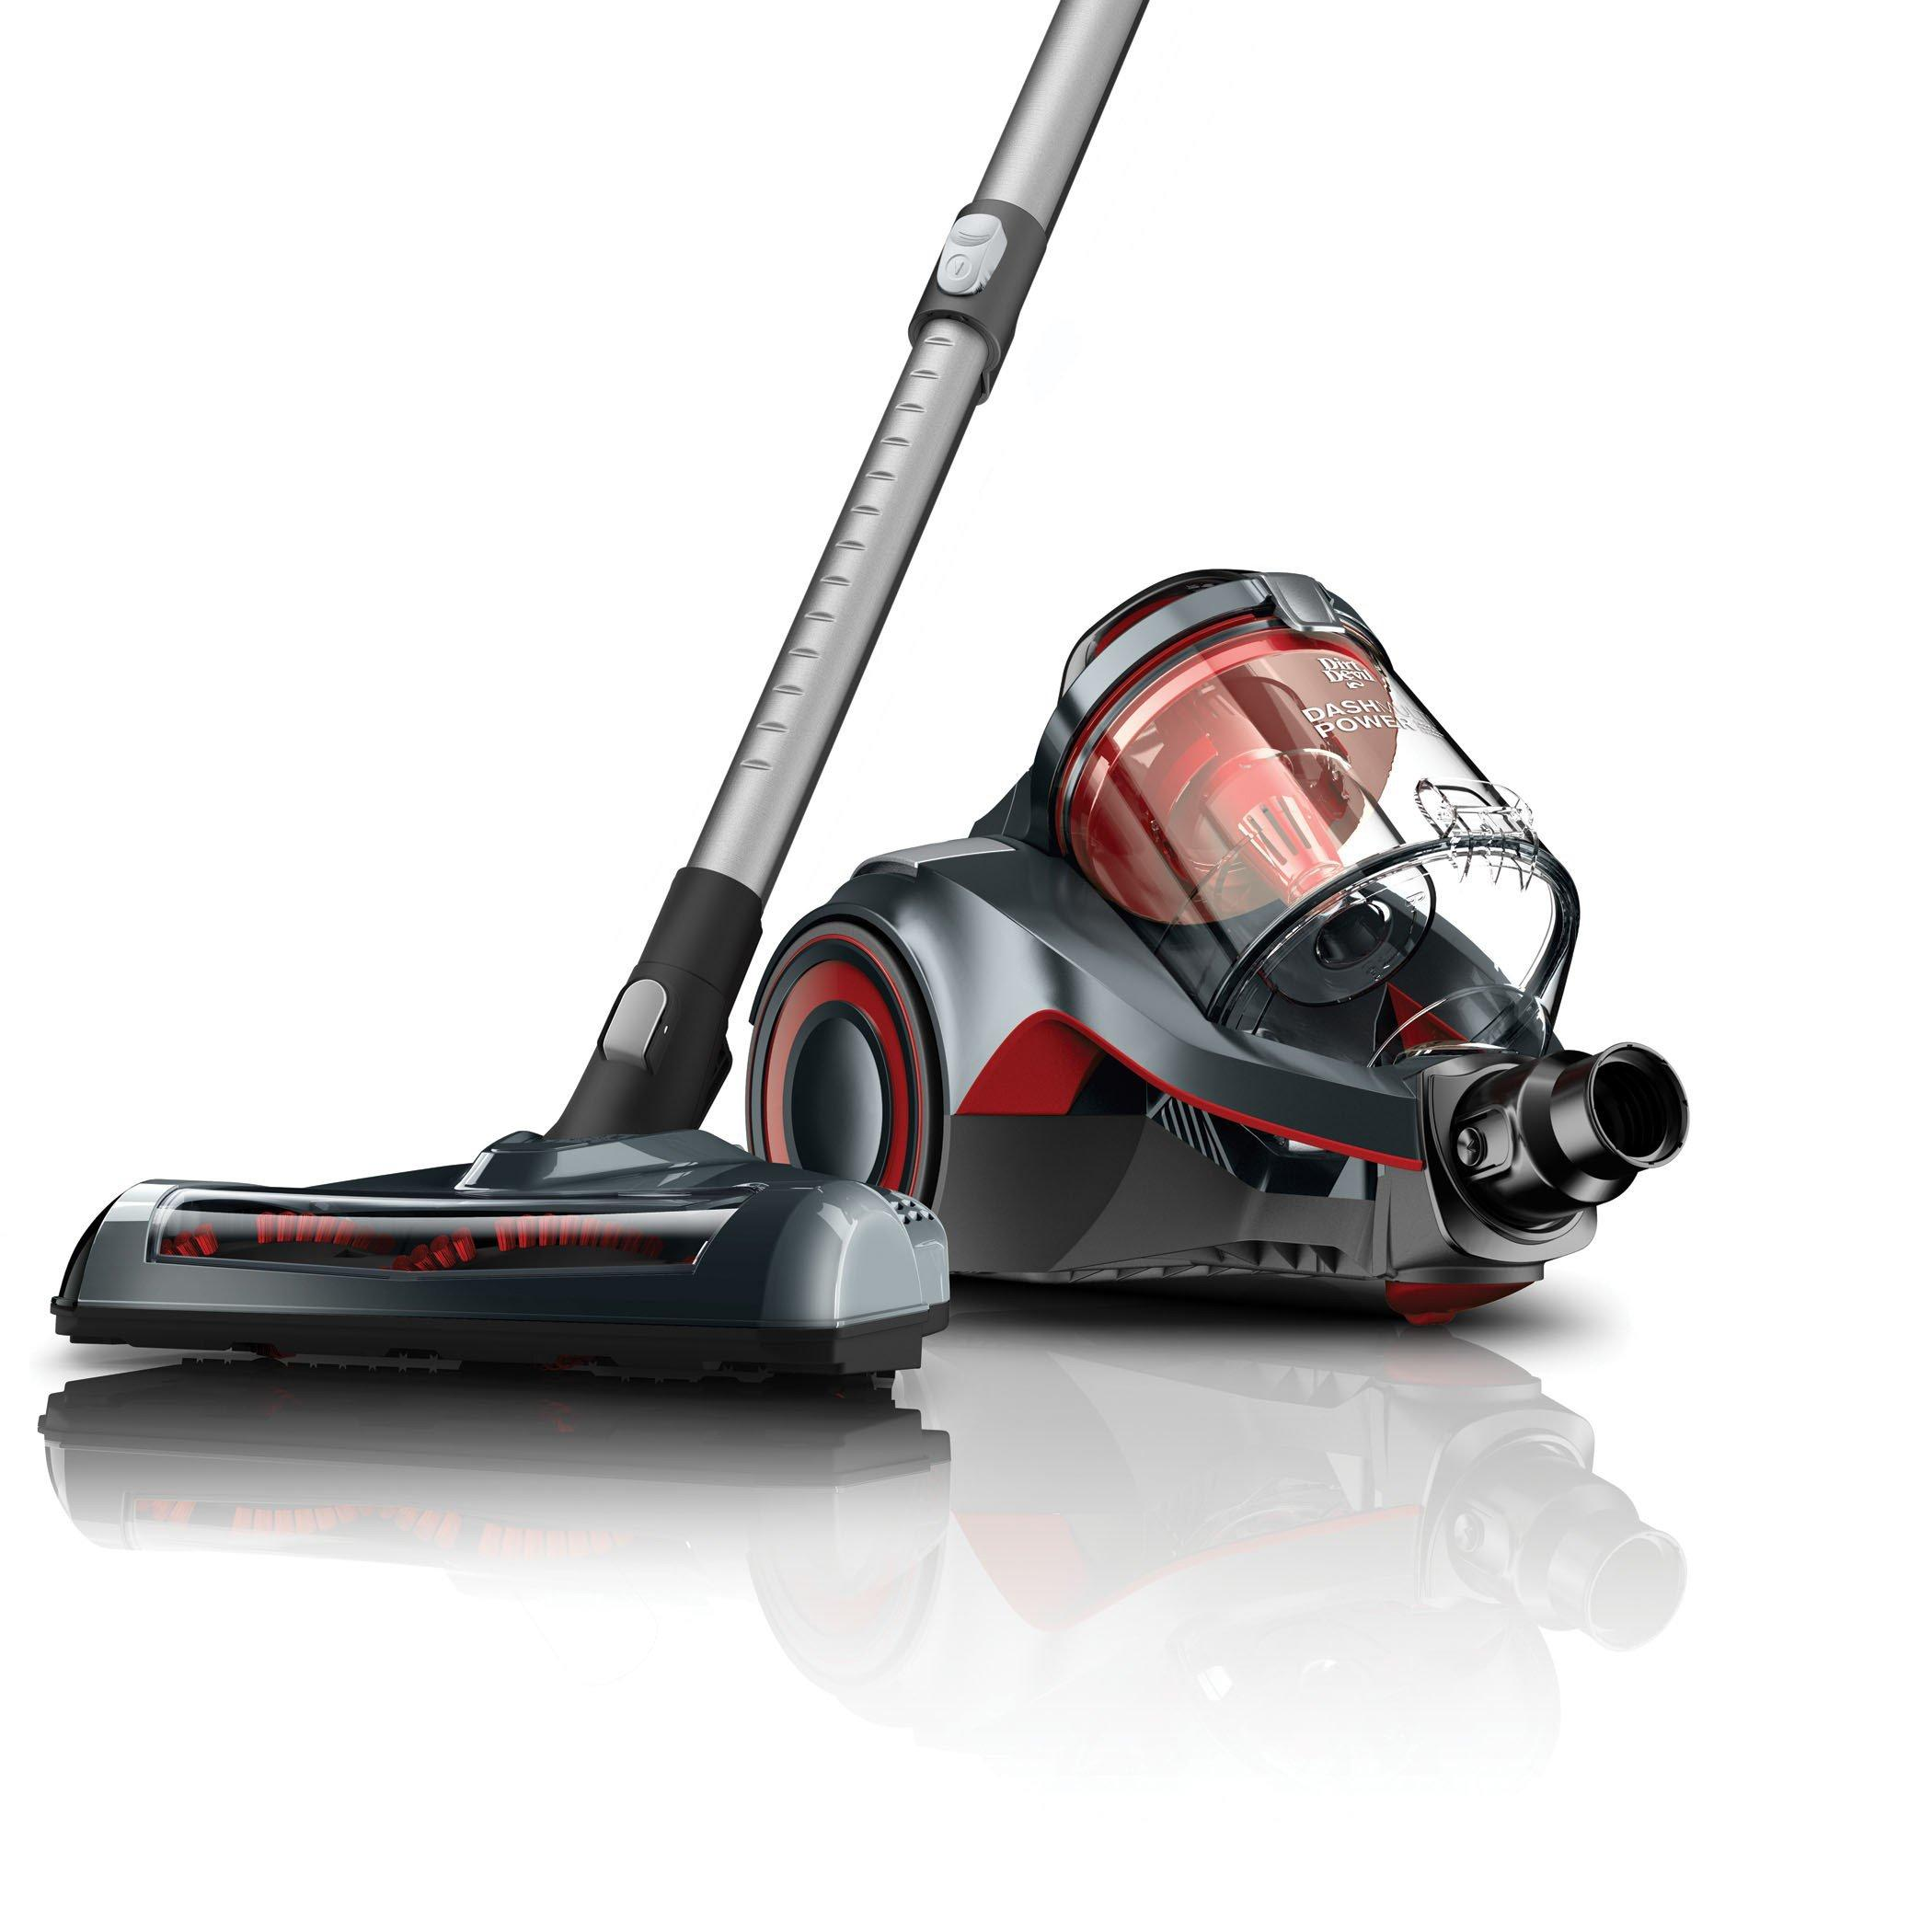 DASH Multi Power Carpet & Hard Floor Canister Vacuum2